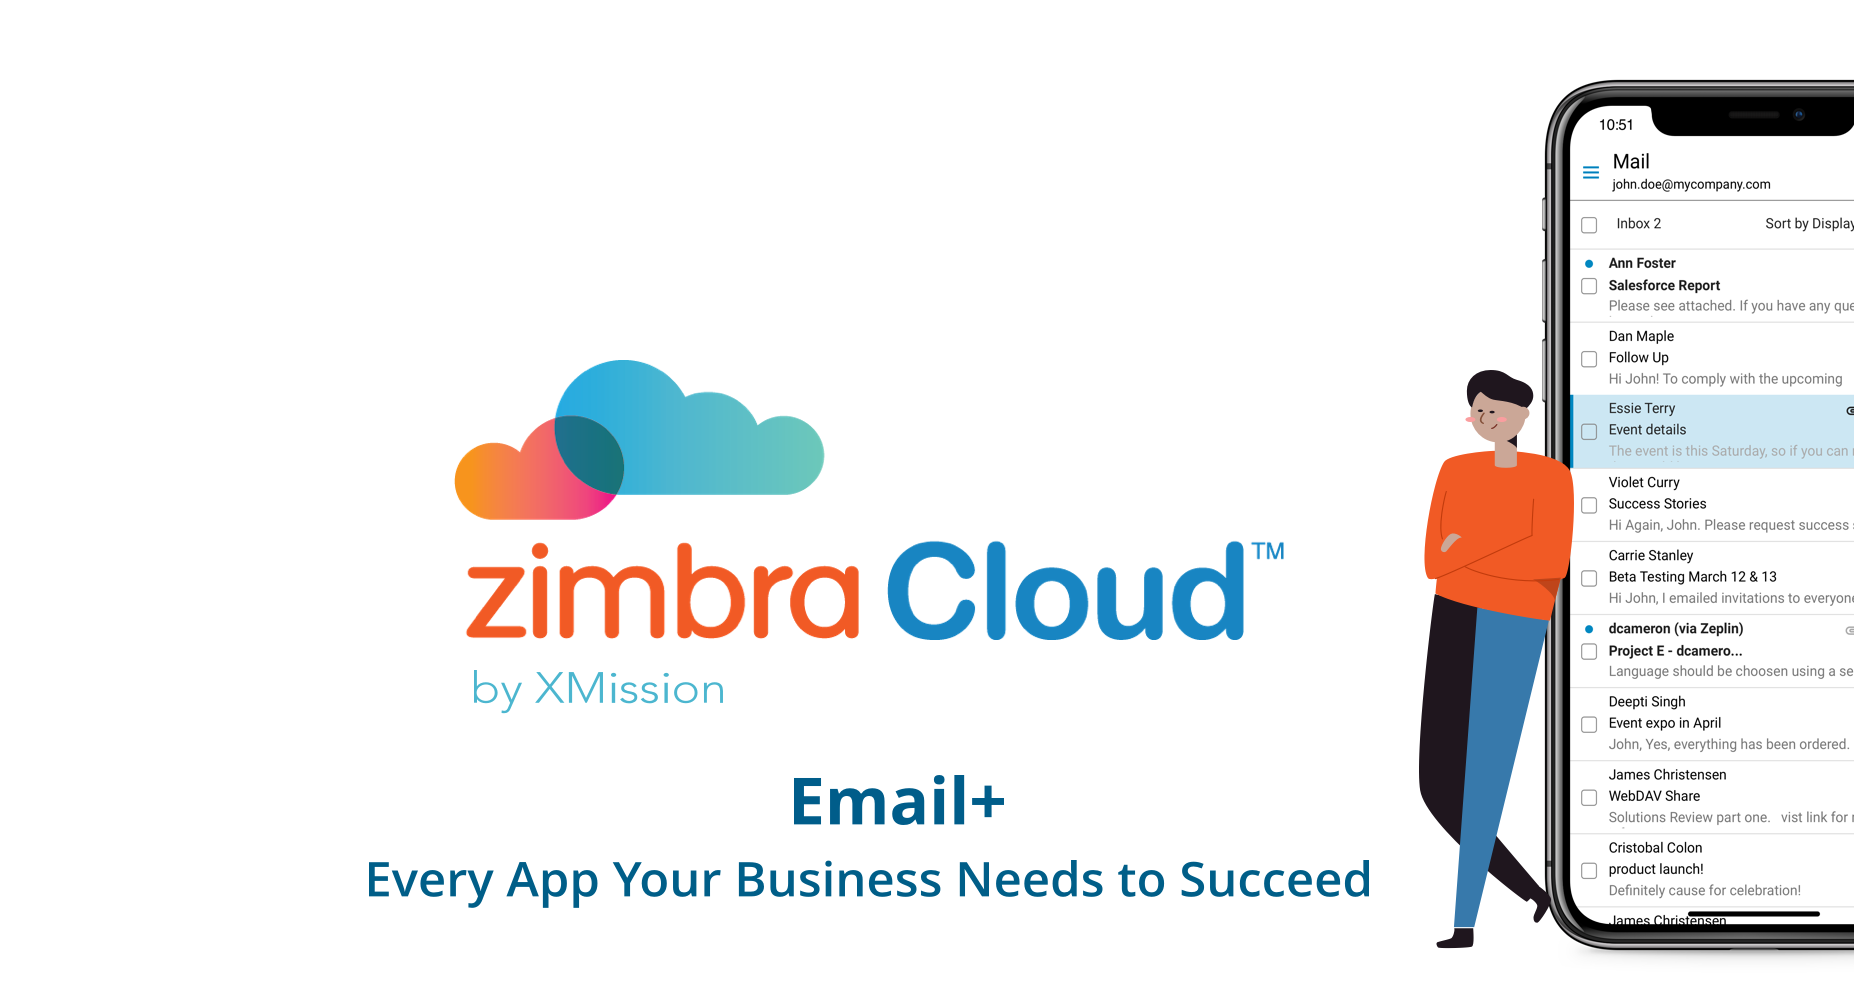 Zimbra Cloud Trial by Xmission